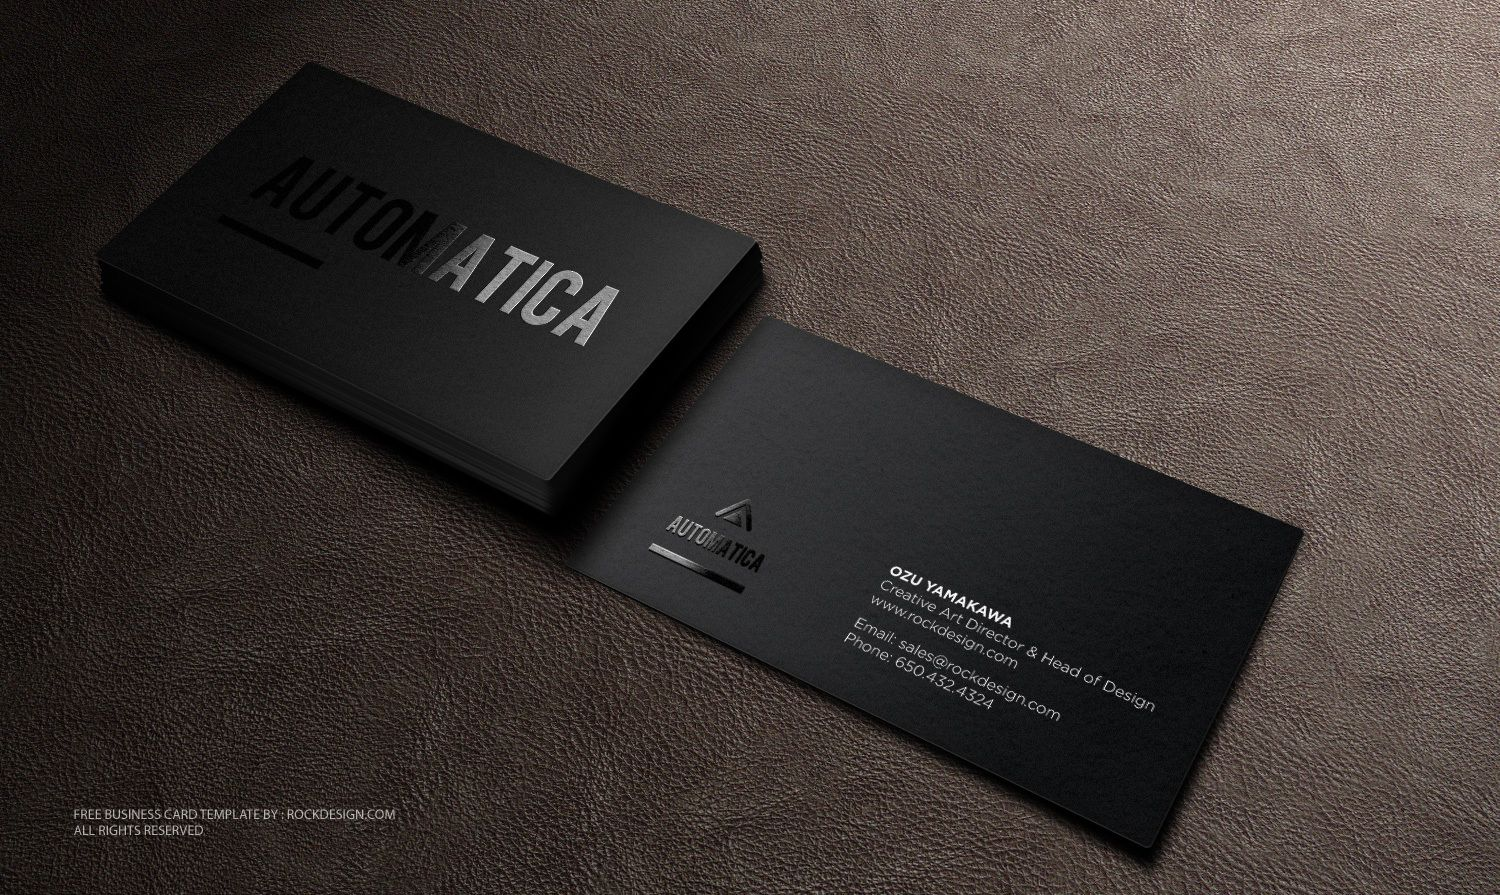 Black business card template download free design templates black business card template download free design templates friedricerecipe Images